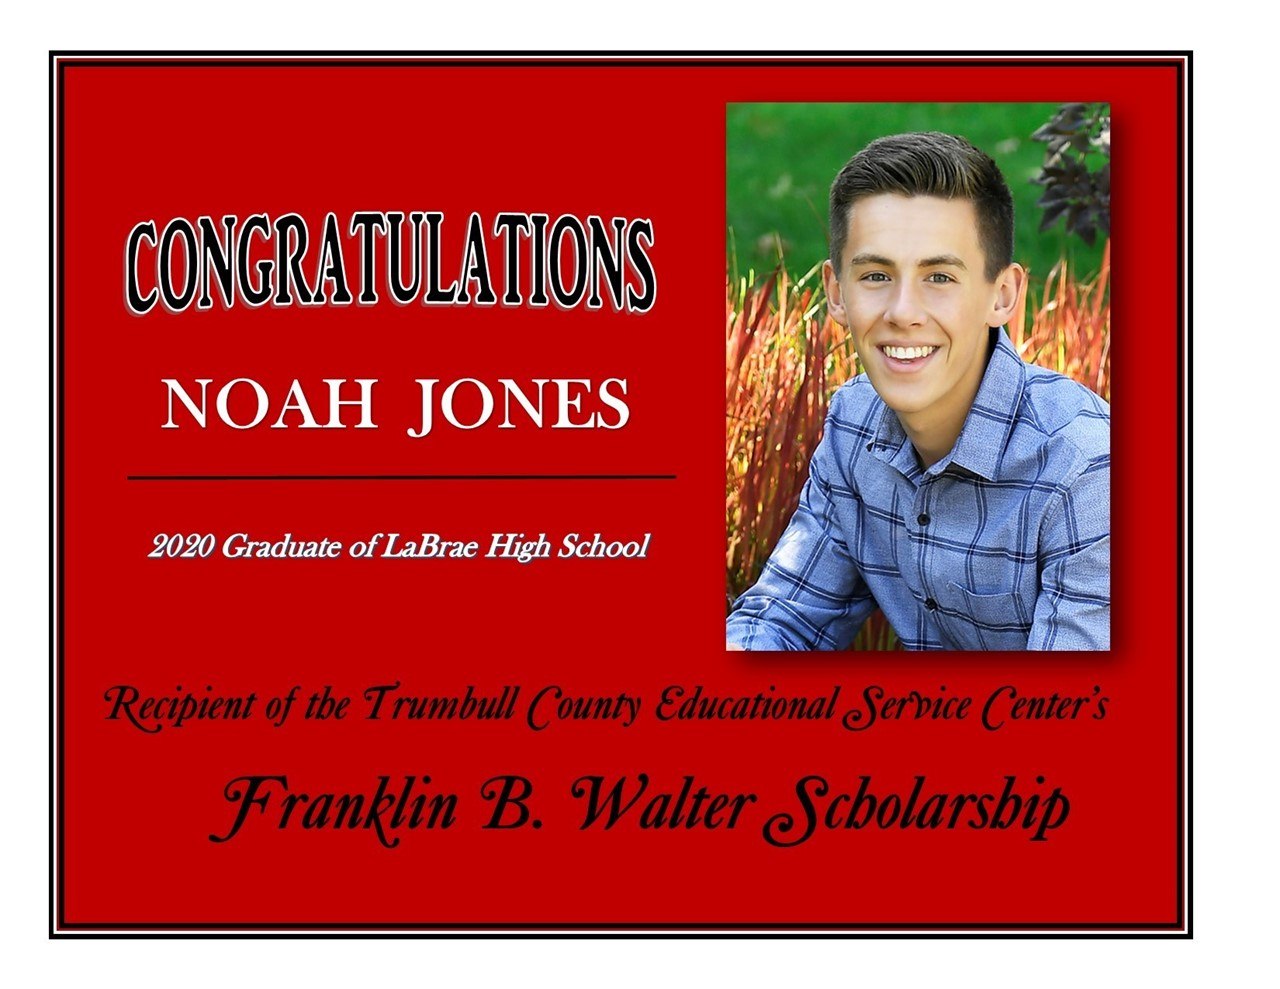 Noah Jones Scholarship Recipient